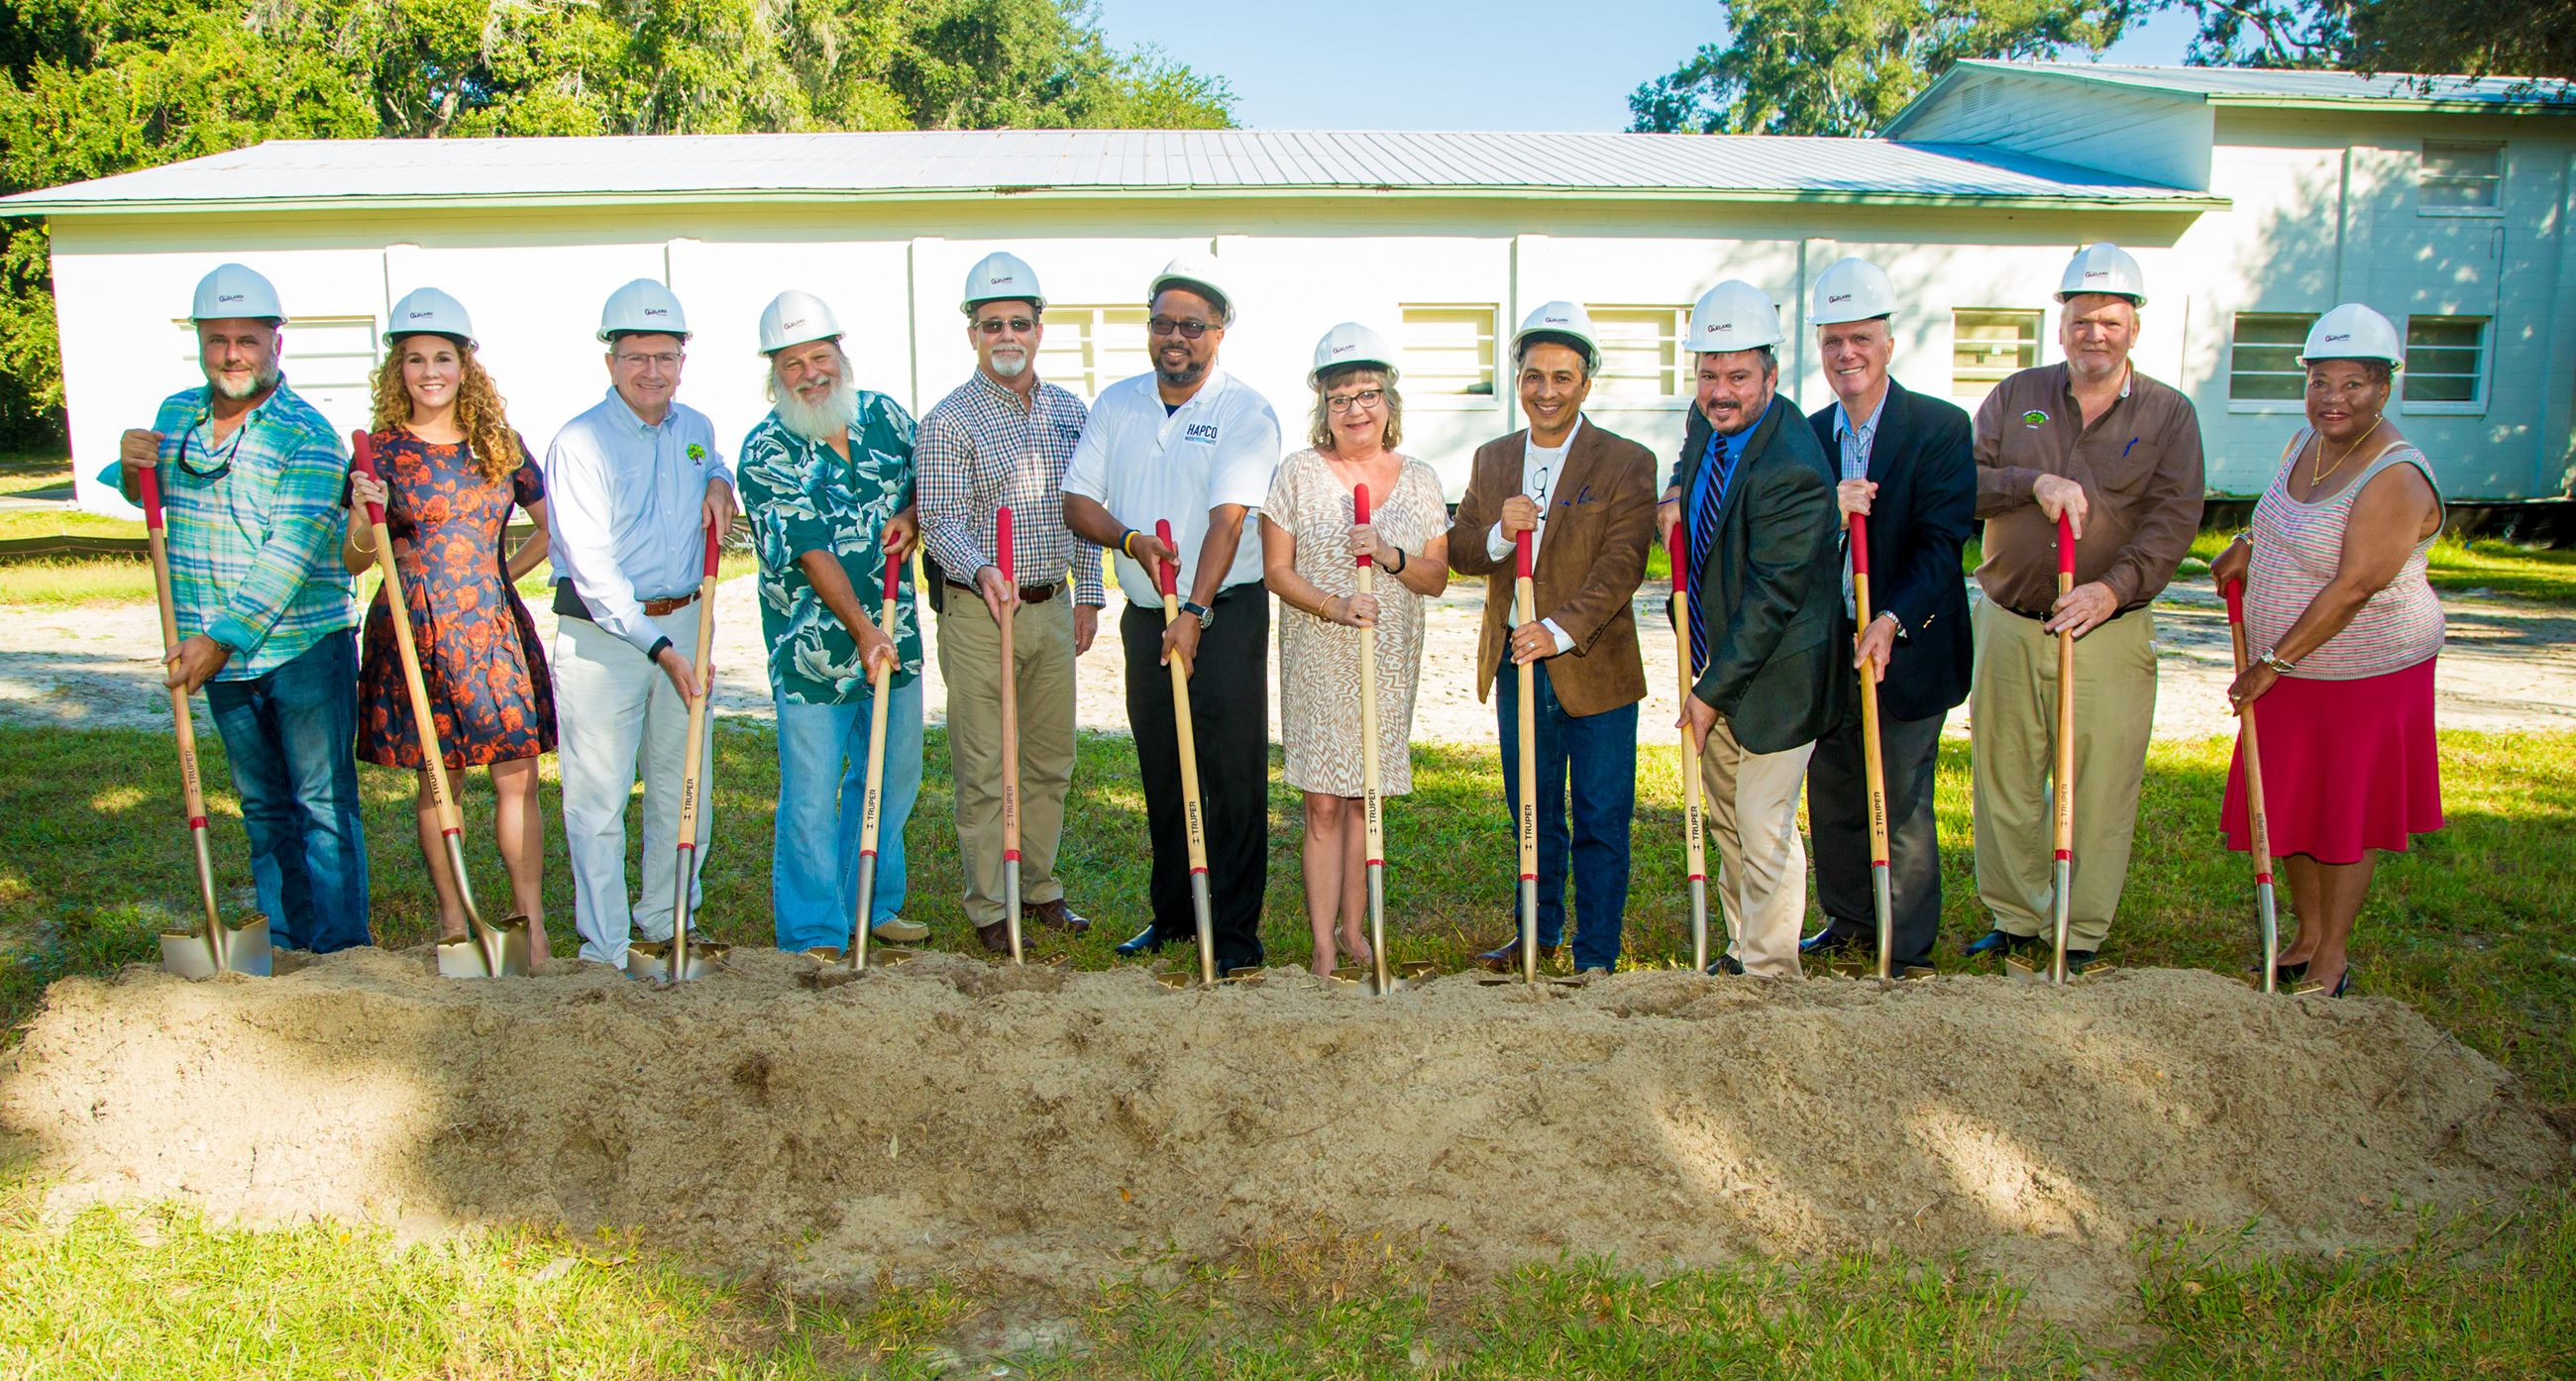 Local and State officials with shovels at The Arts and Heritage Center groundbreaking